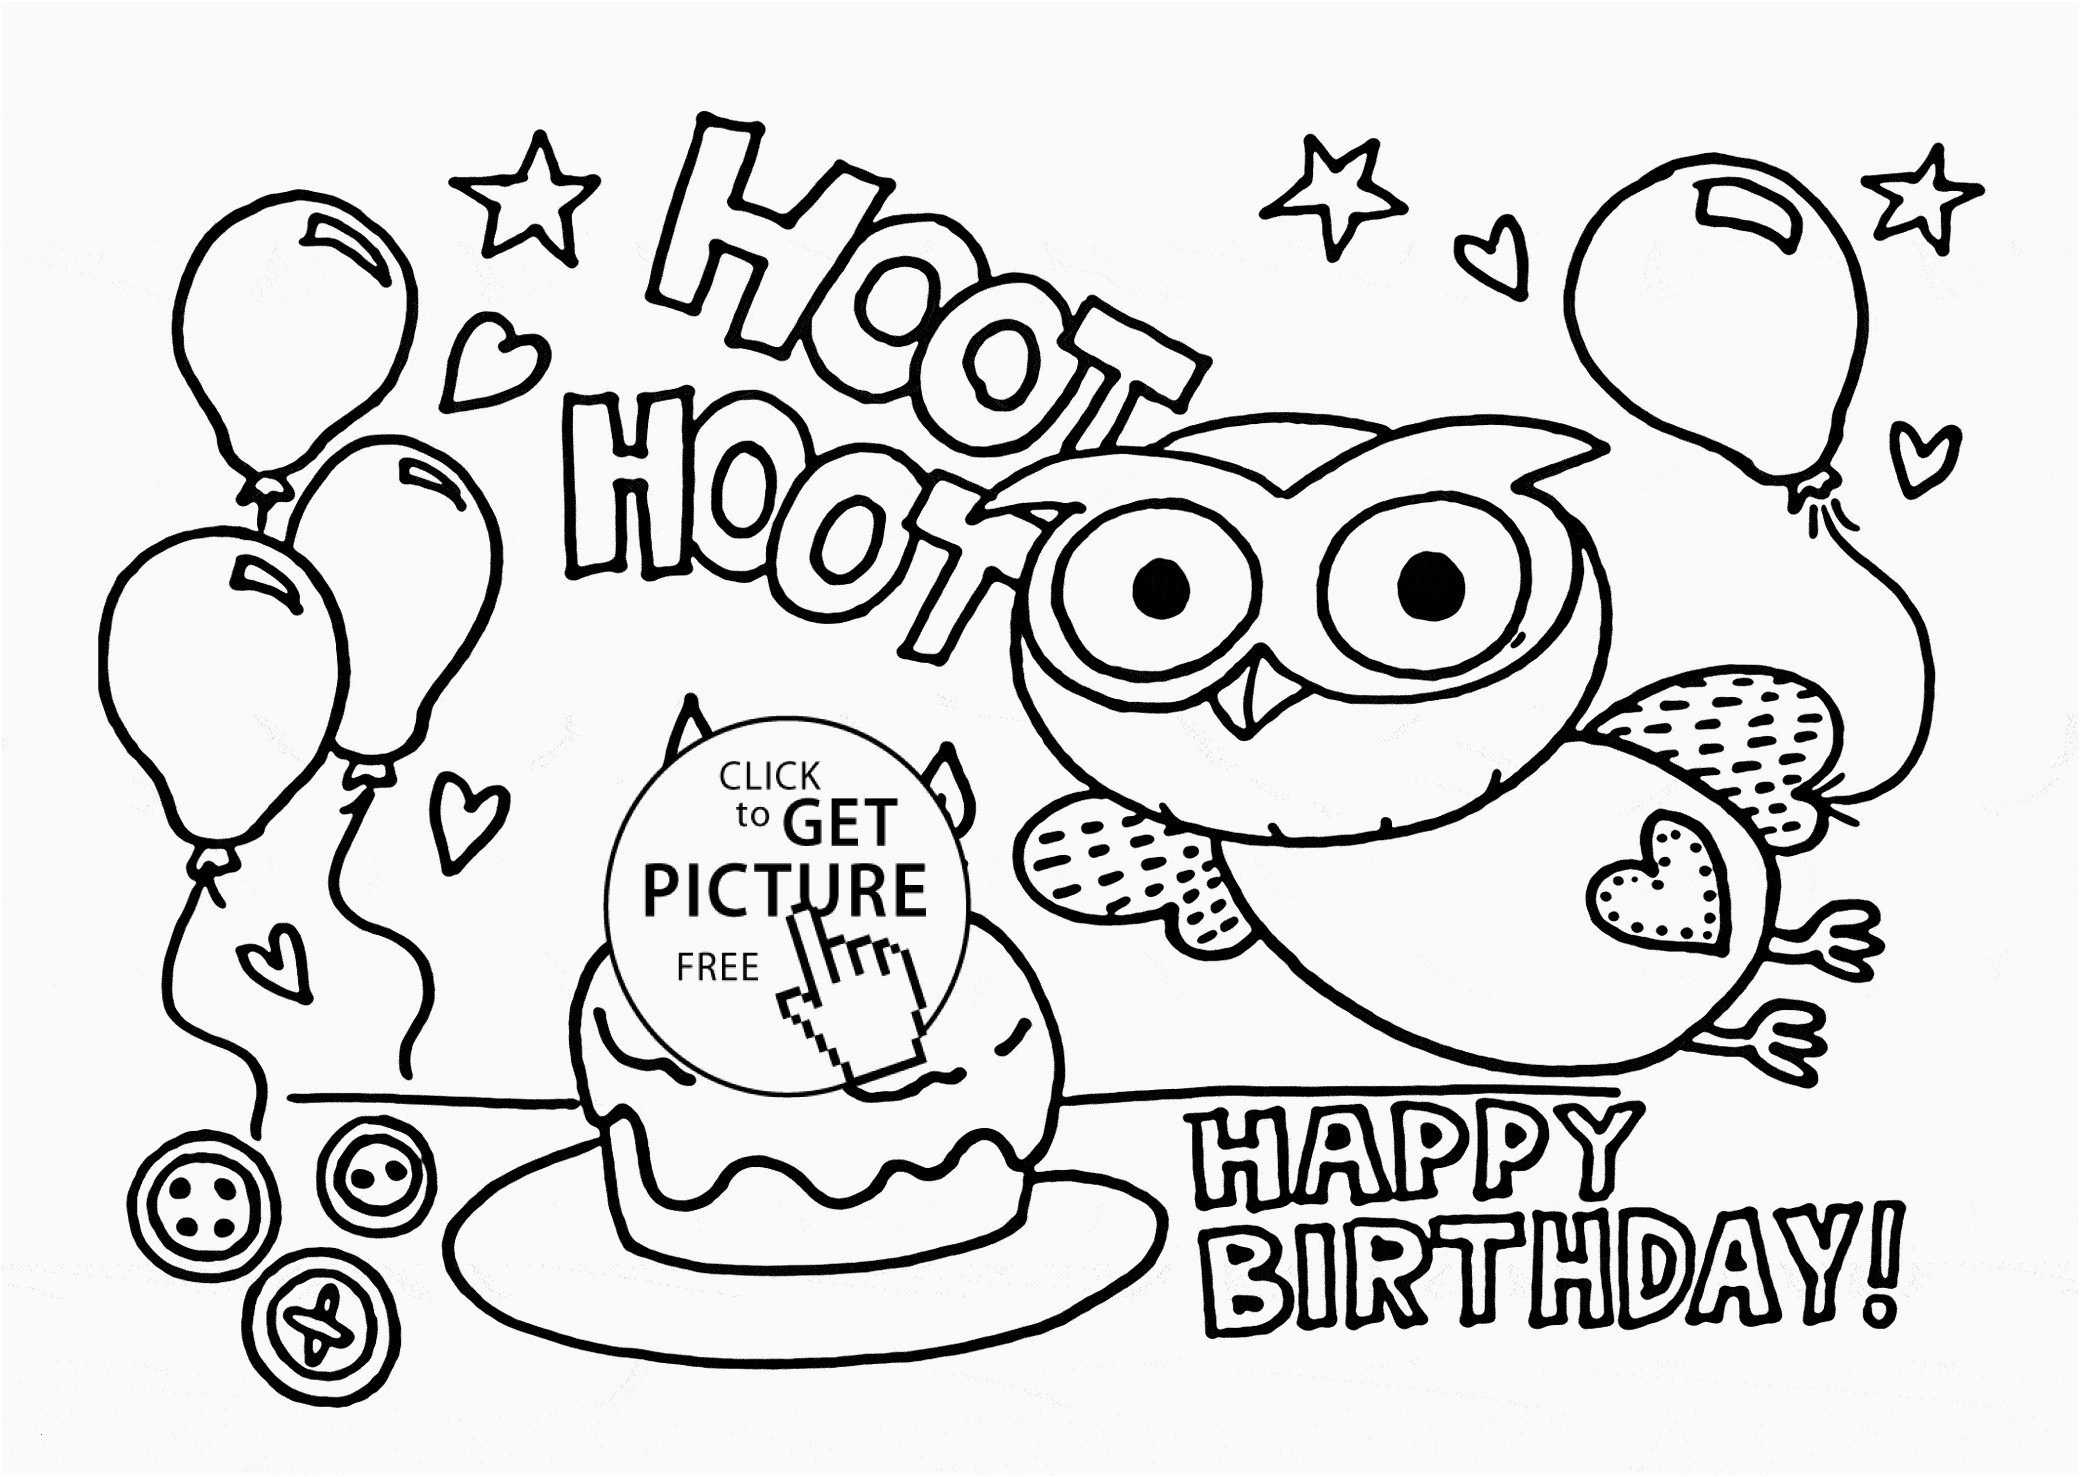 coloring pages greeting cards Download-Birthdays Cards Unique Printable Funny Birthday Cards Best I Pinimg originals 0e 0d 49 18-c